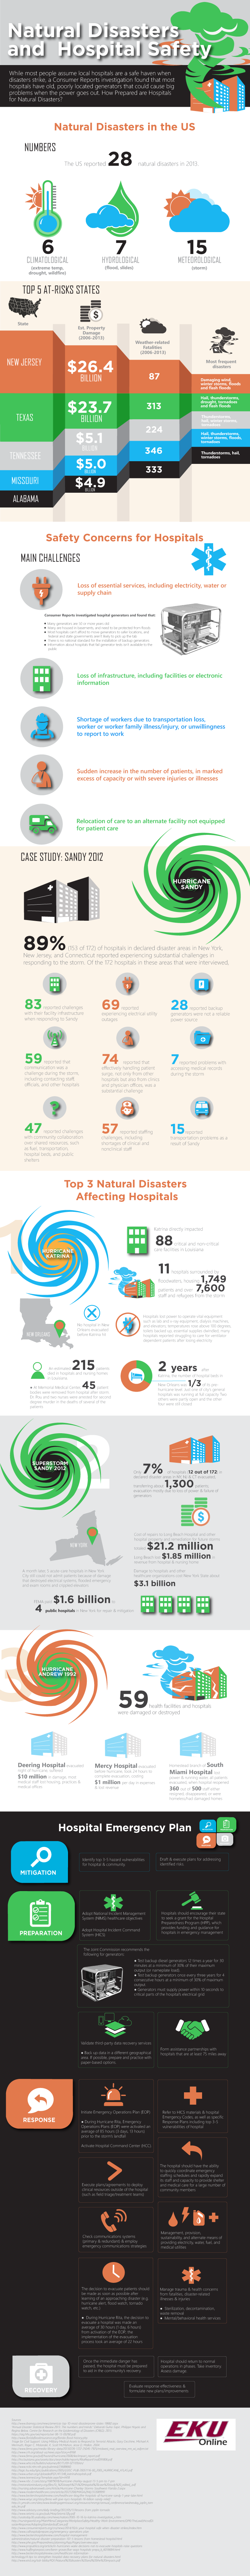 Natural Disasters and Hospital Safety